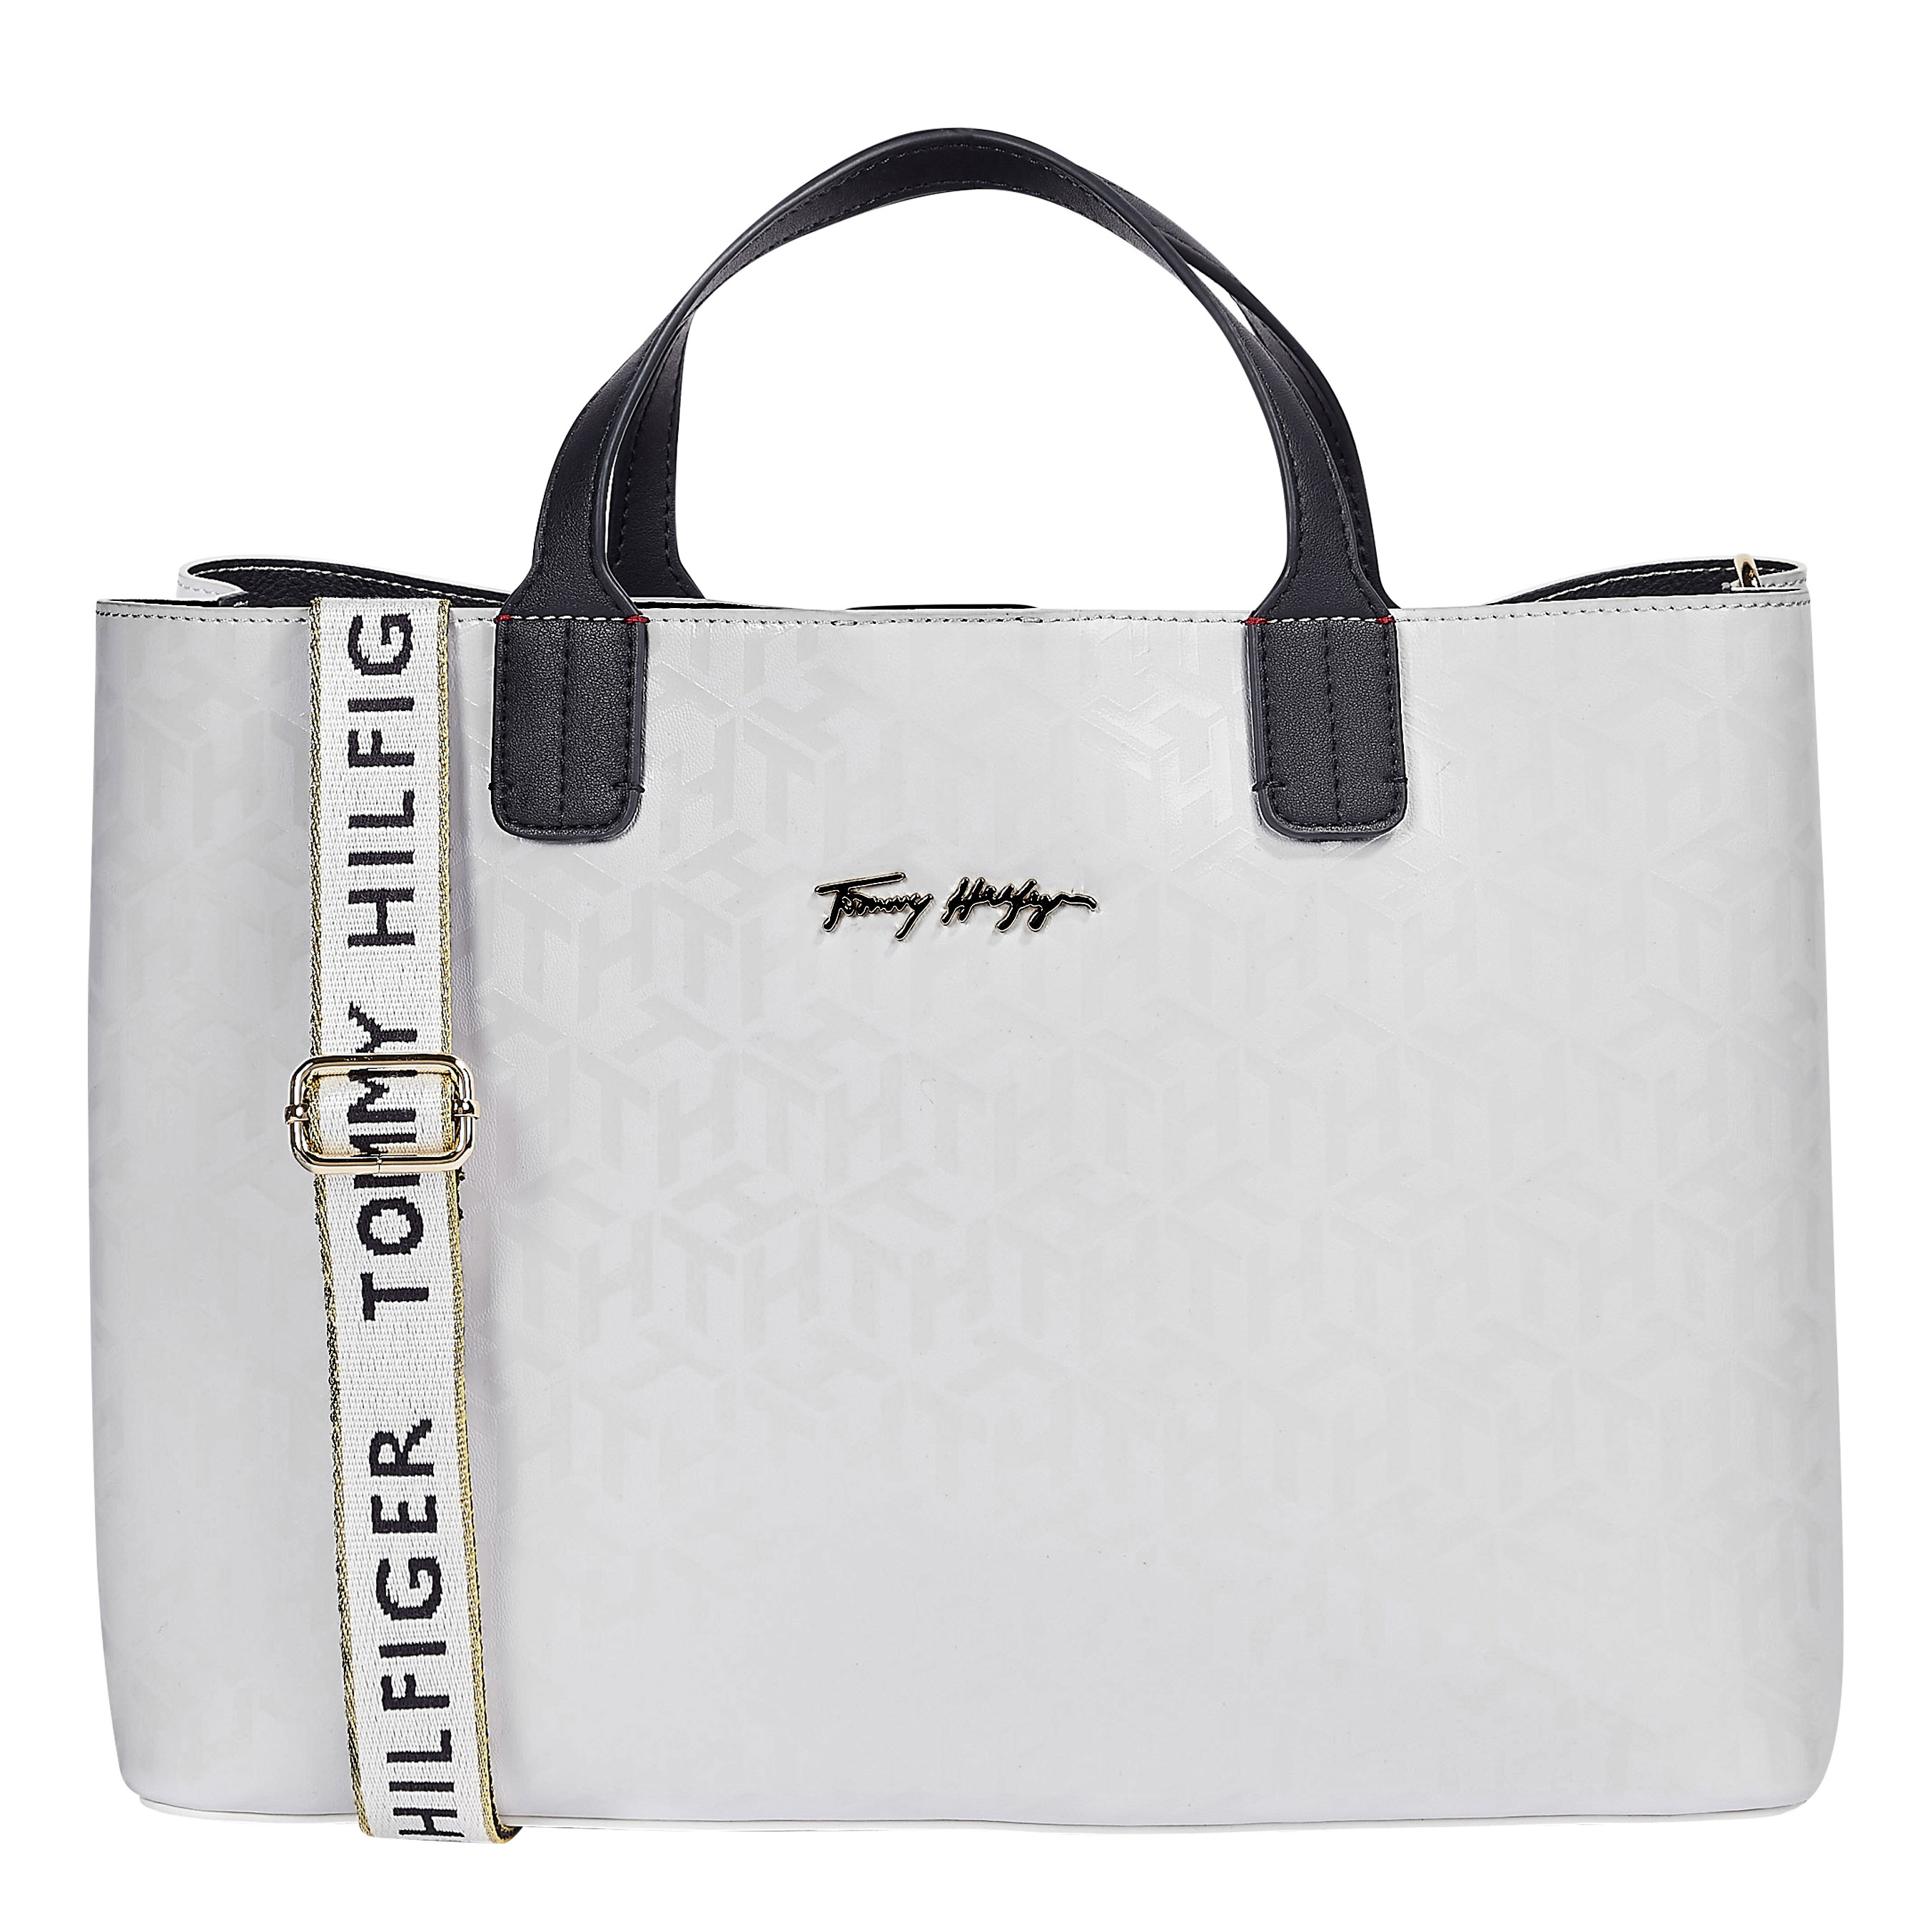 TOMMY HILFIGER Marroquinería Satchel Bright White Mono AW0AW09957-YAF